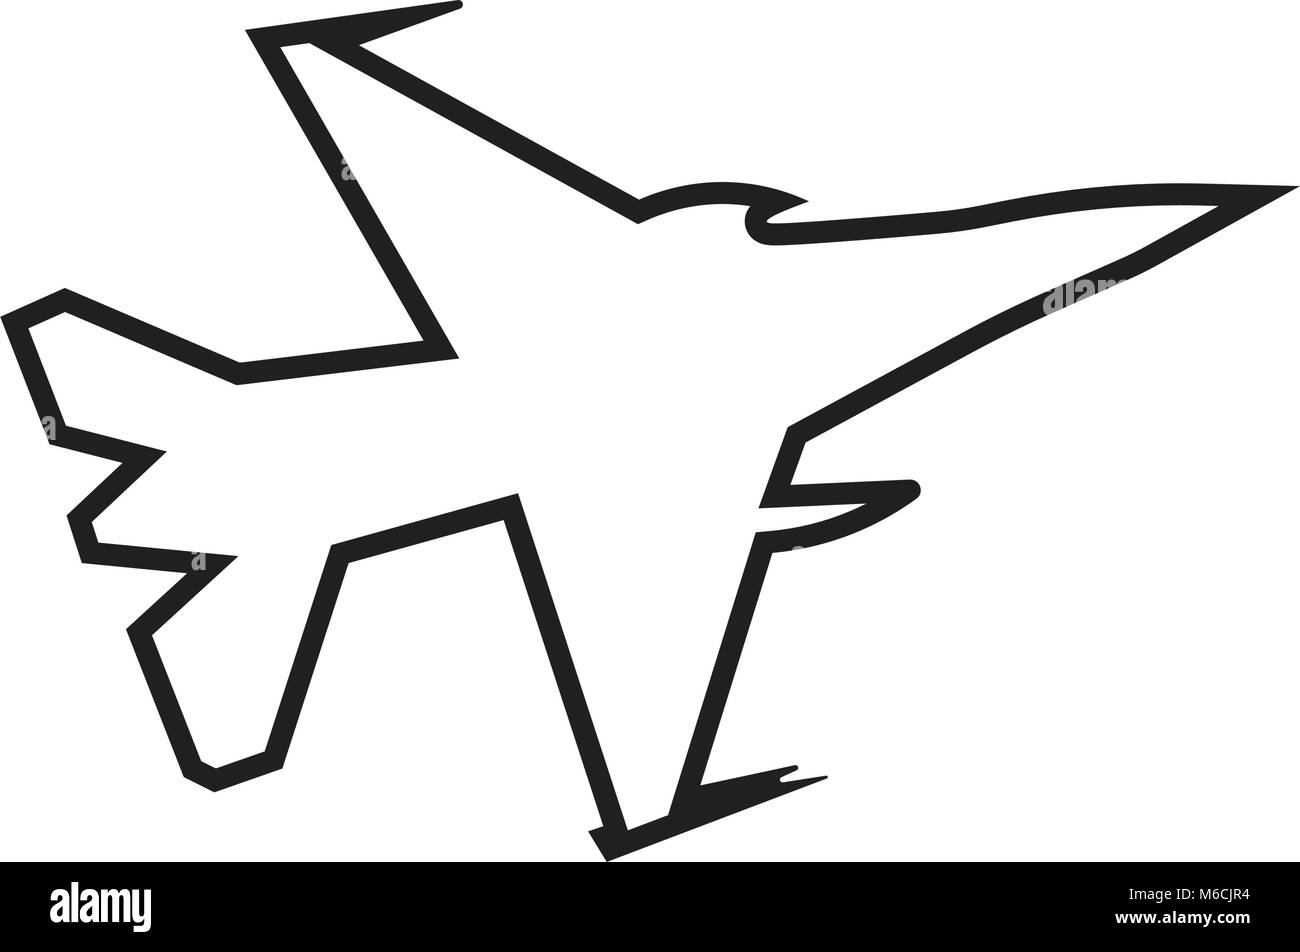 f16 silhouette outline on white background Stock Vector